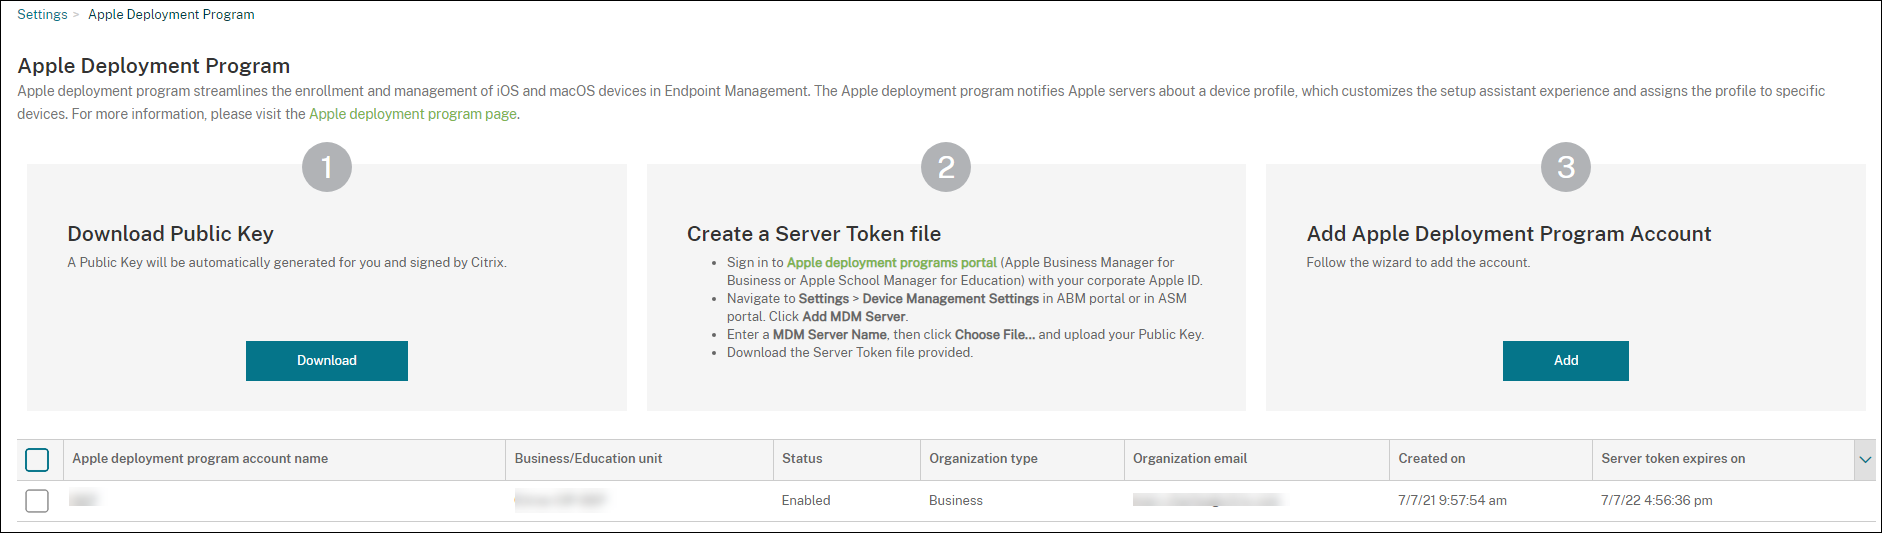 Apple Deployment Program settings screen